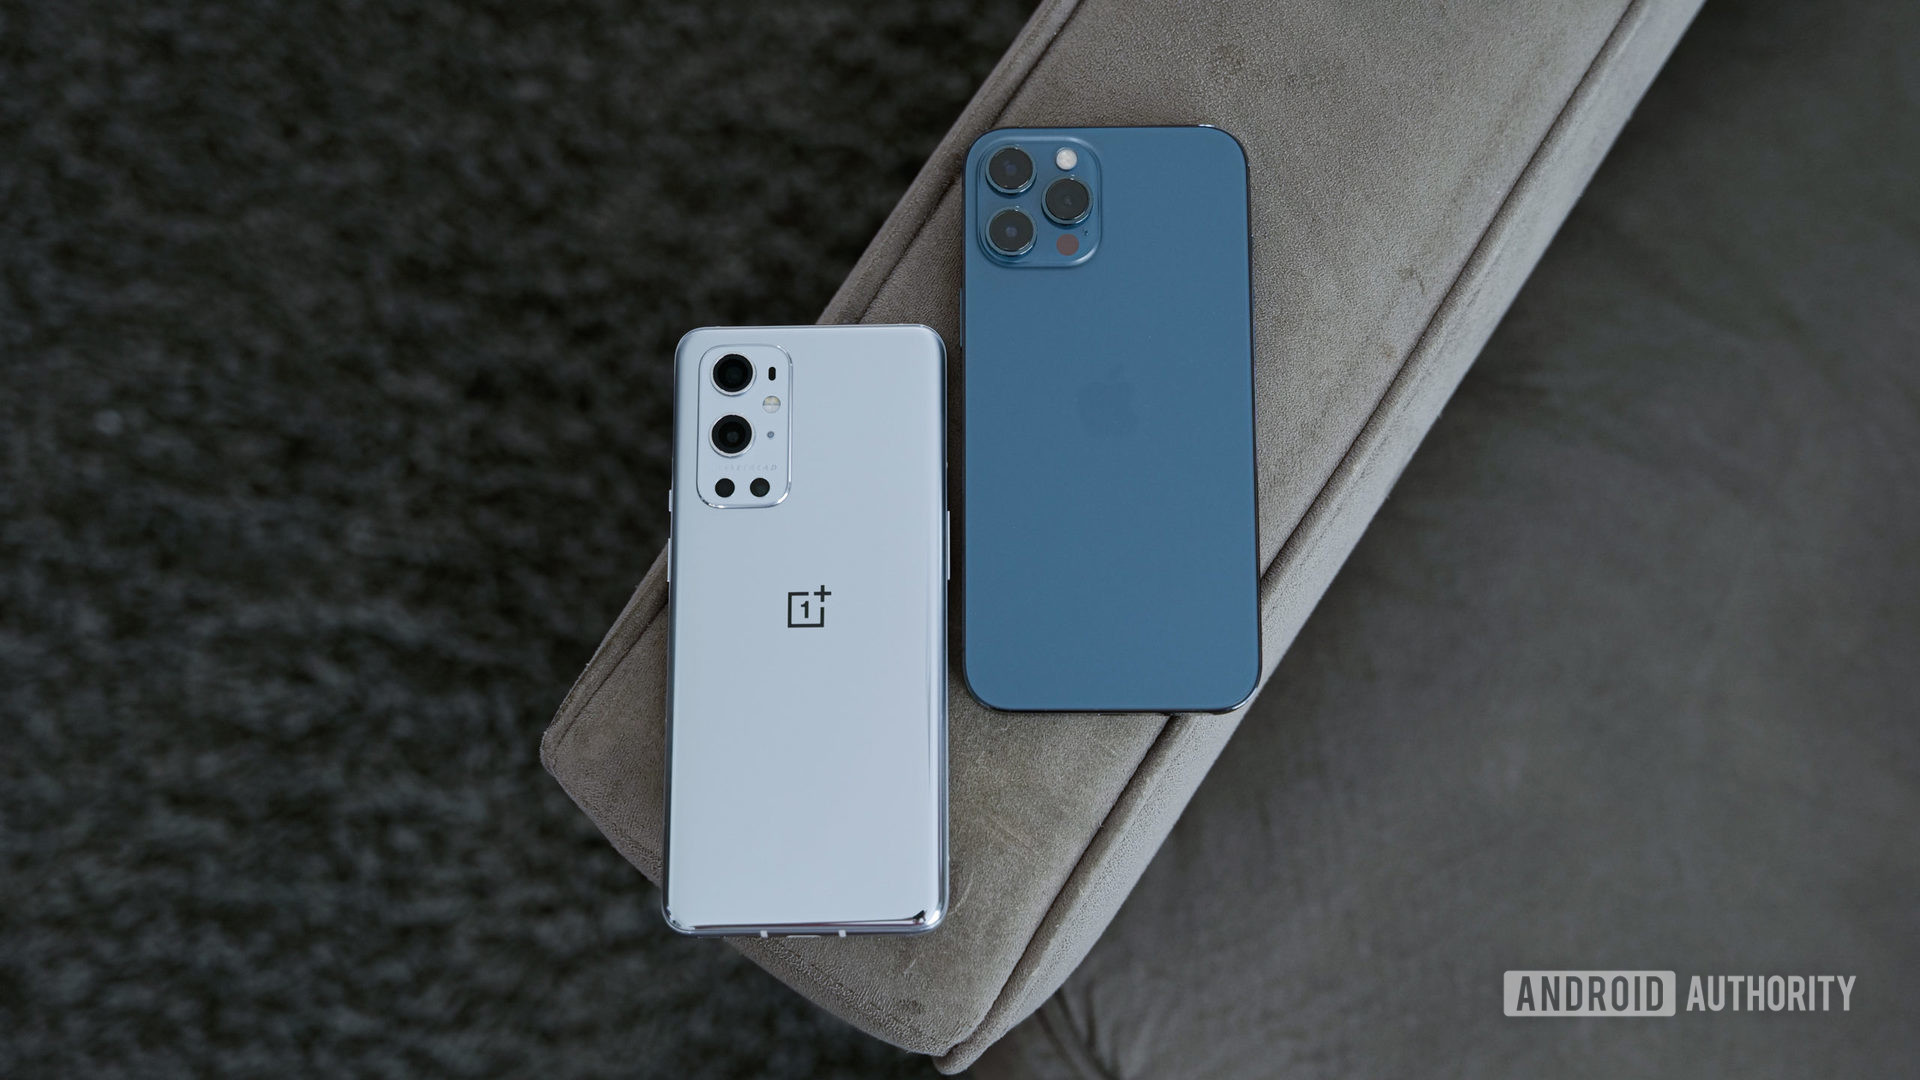 OnePlus 9 Pro vs iPhone 12 Pro Max on the arm of the sofa